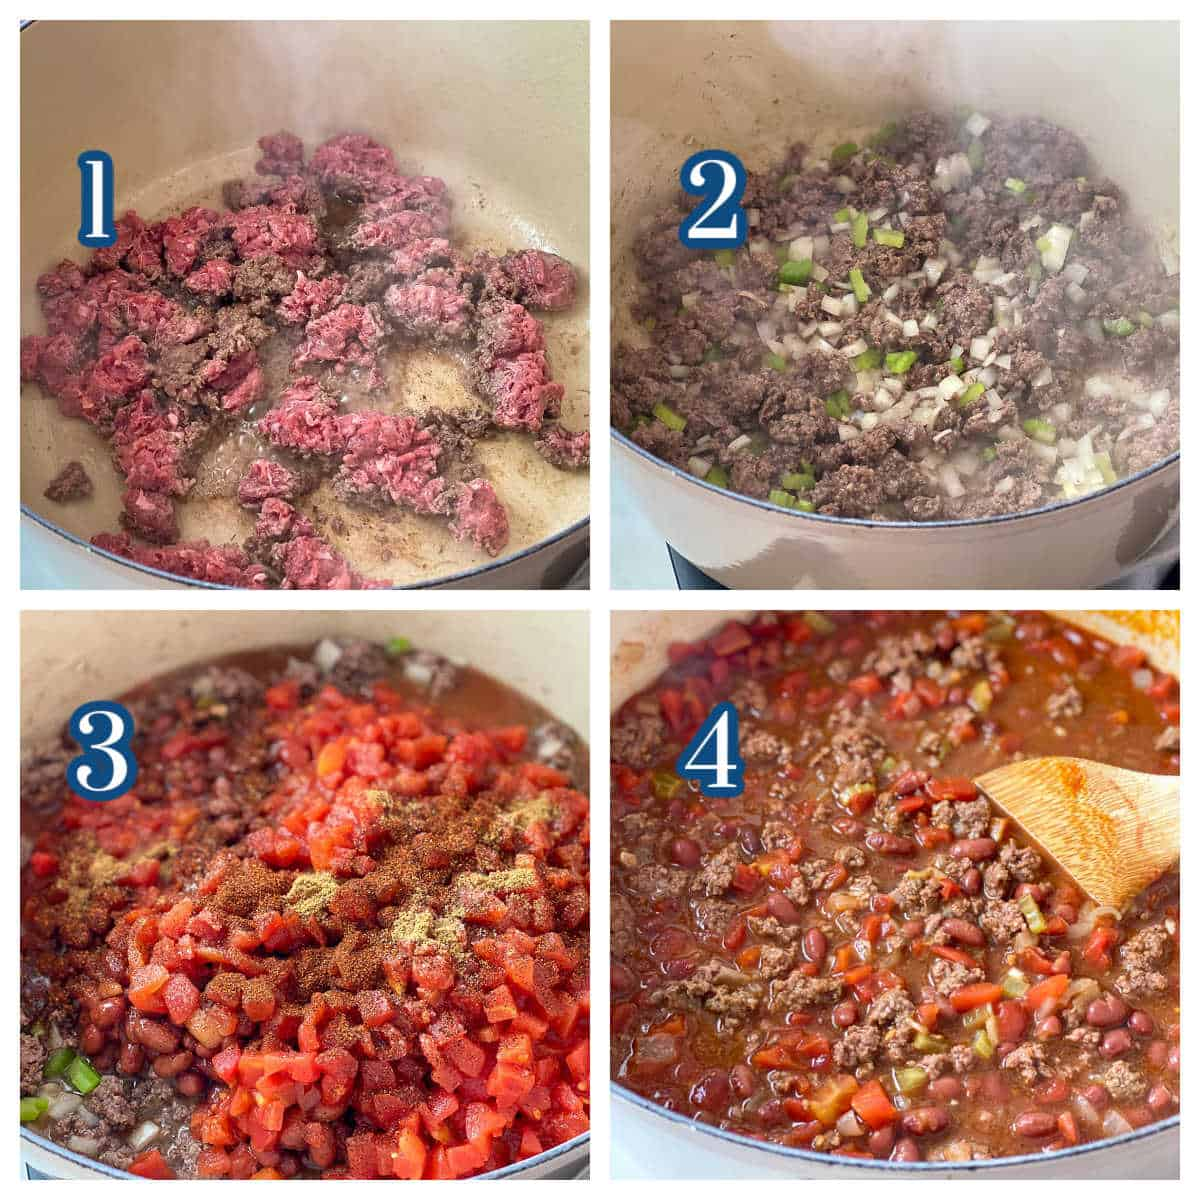 Collage showing four steps for making this delicious Bison Chili recipe.